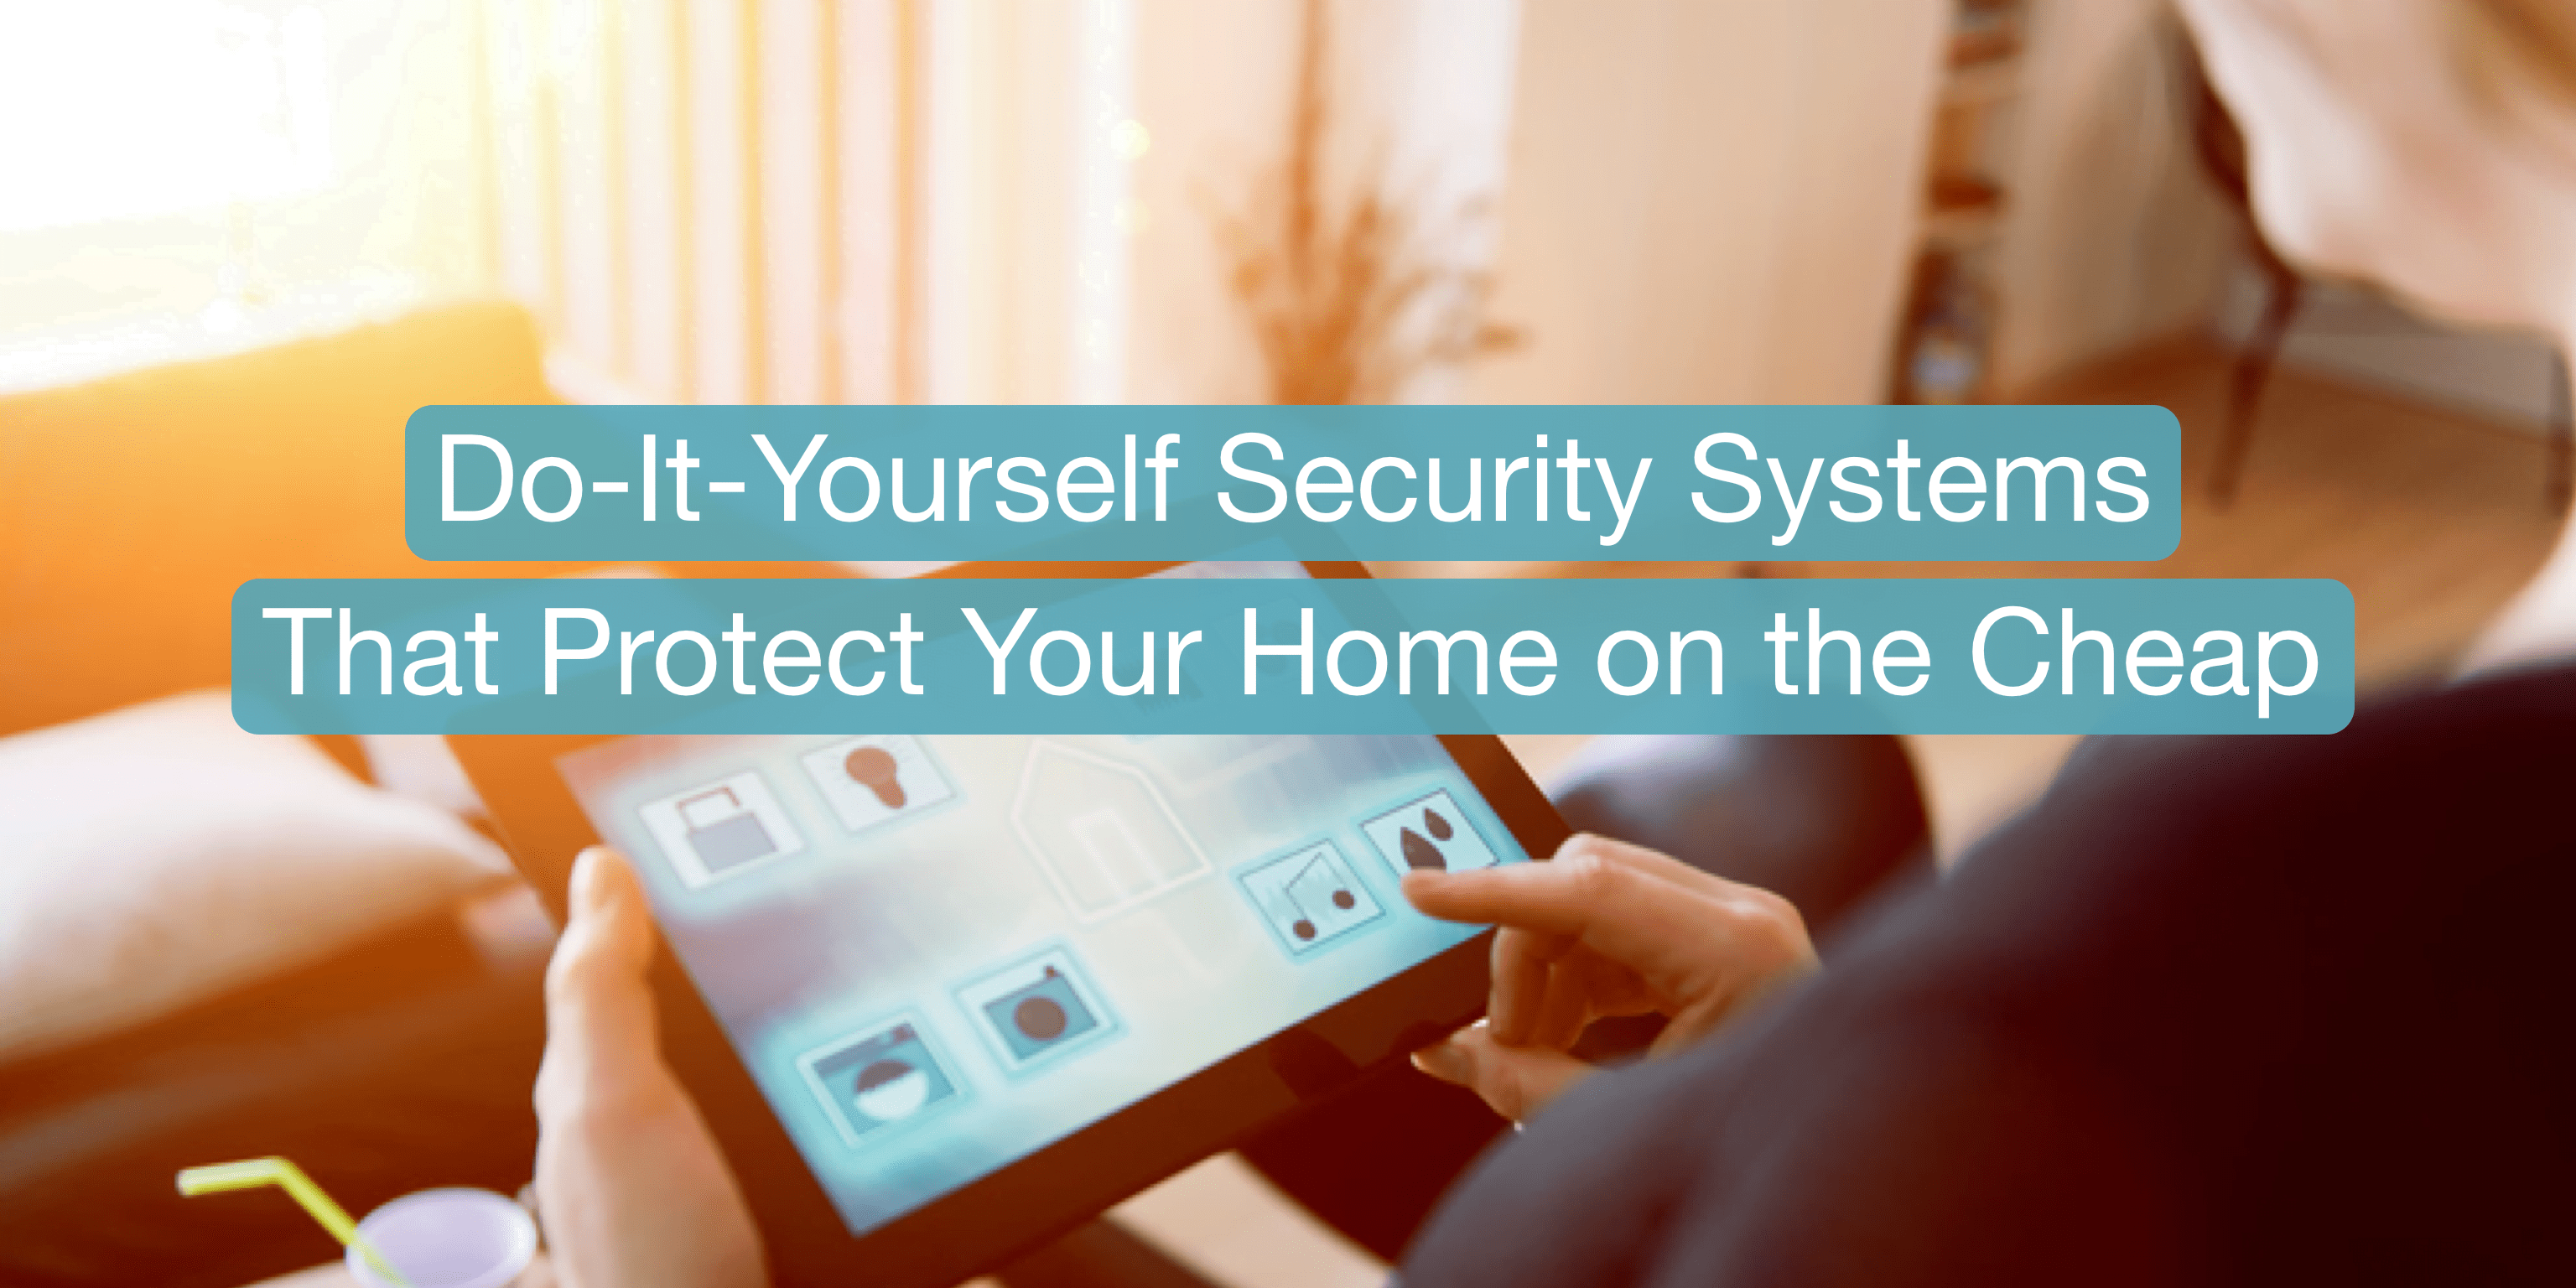 Install Your Own Security System